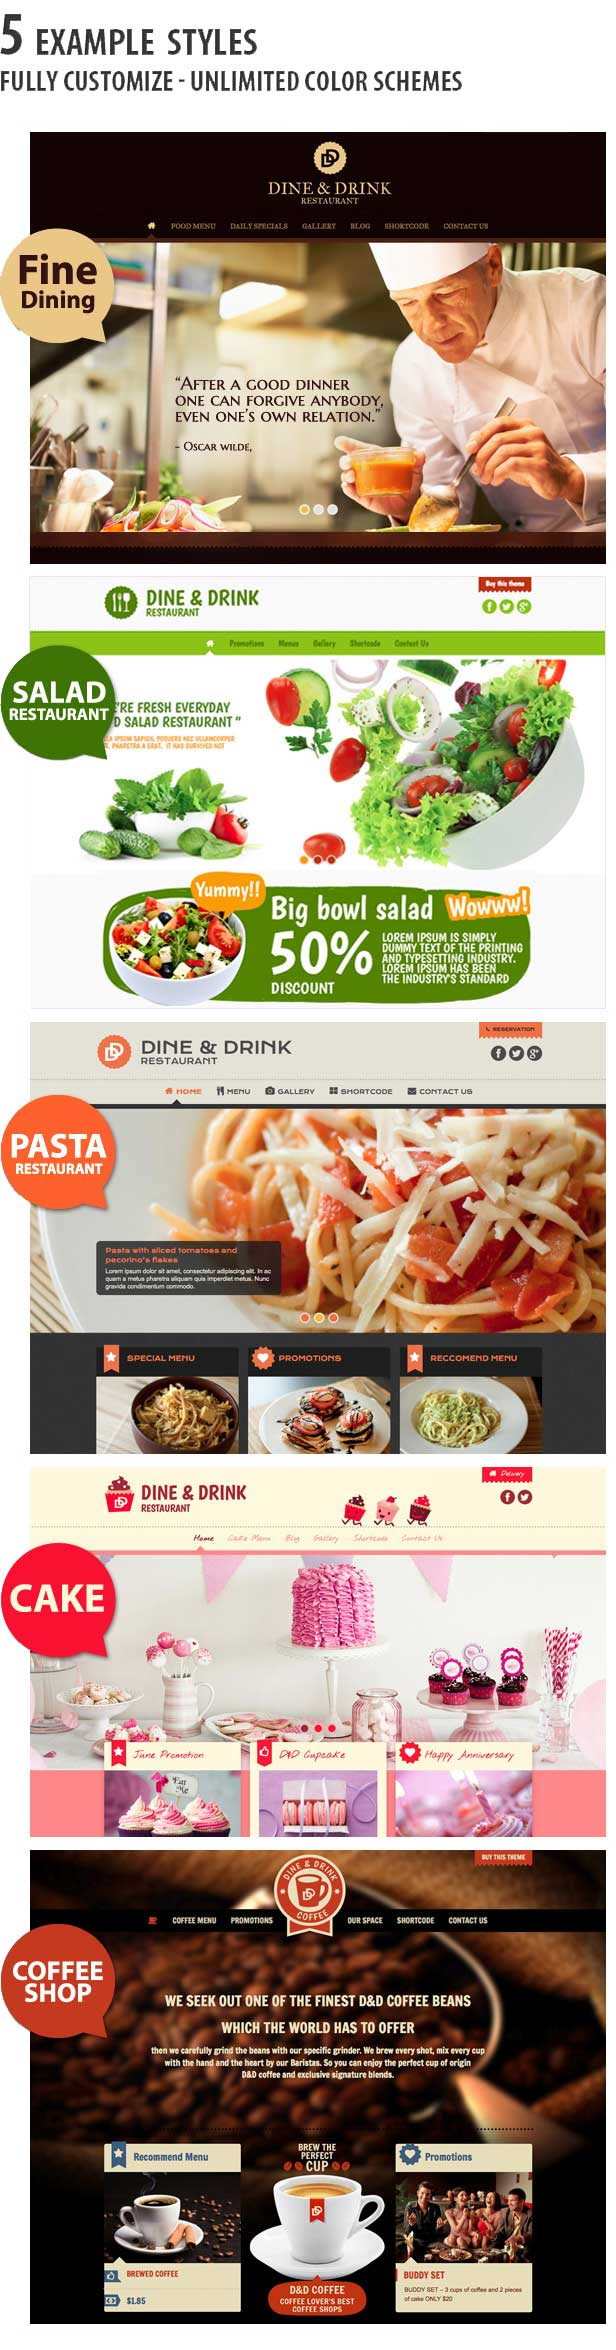 dine and drink wordpress theme